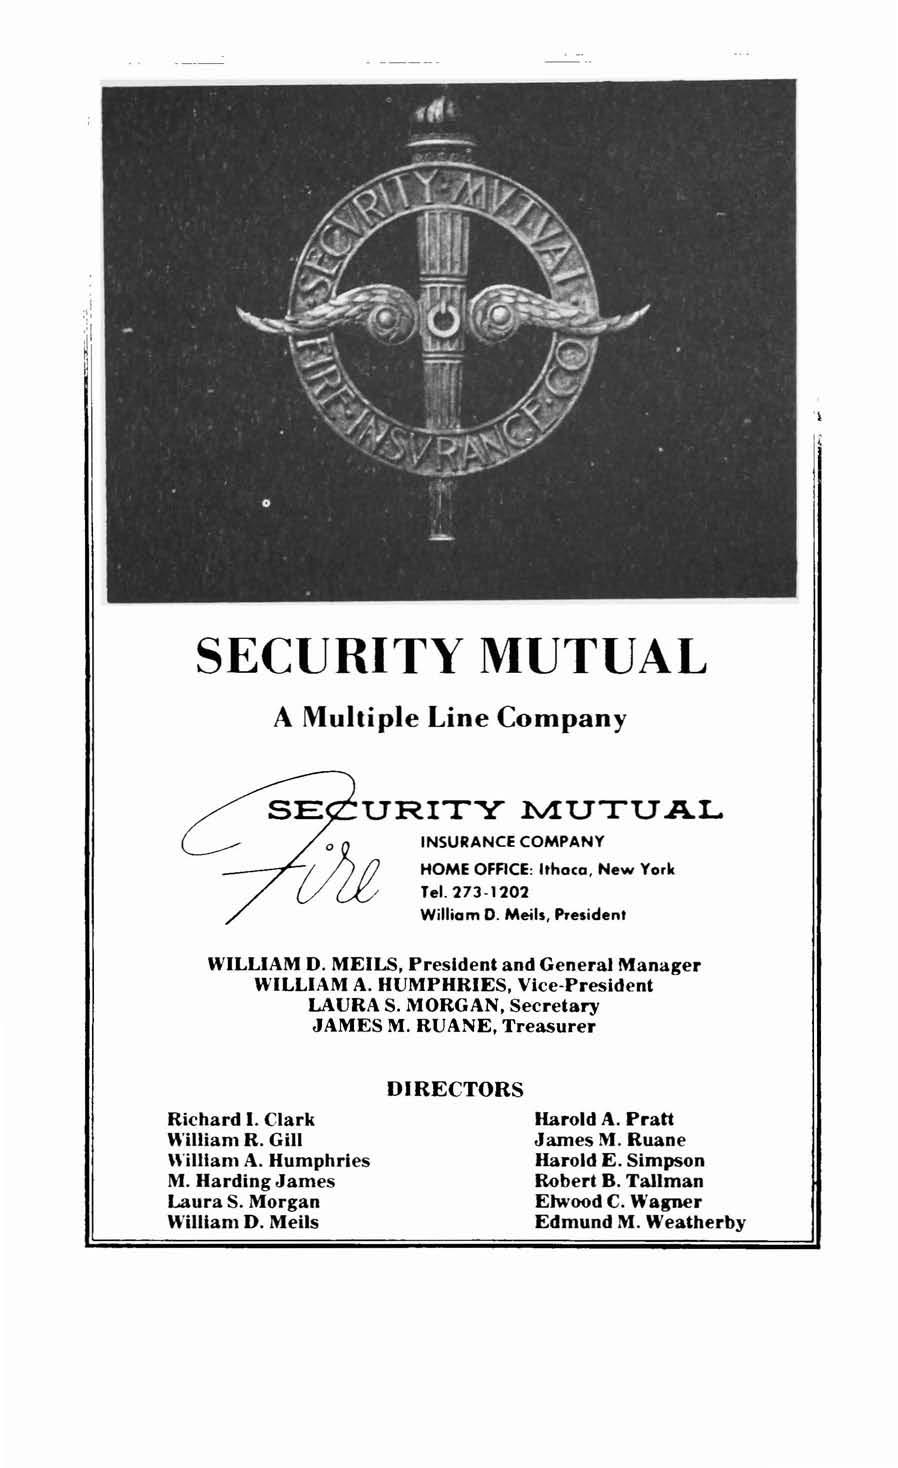 SECURITY MUTUAL A Multiple Line Company URITY lviutual INSURANCE COMPANY HOME OFFICE: Ithaca, New York Tel. 273-1202 William D. Metis, PTesidenl WILLIAM D. MEILS.